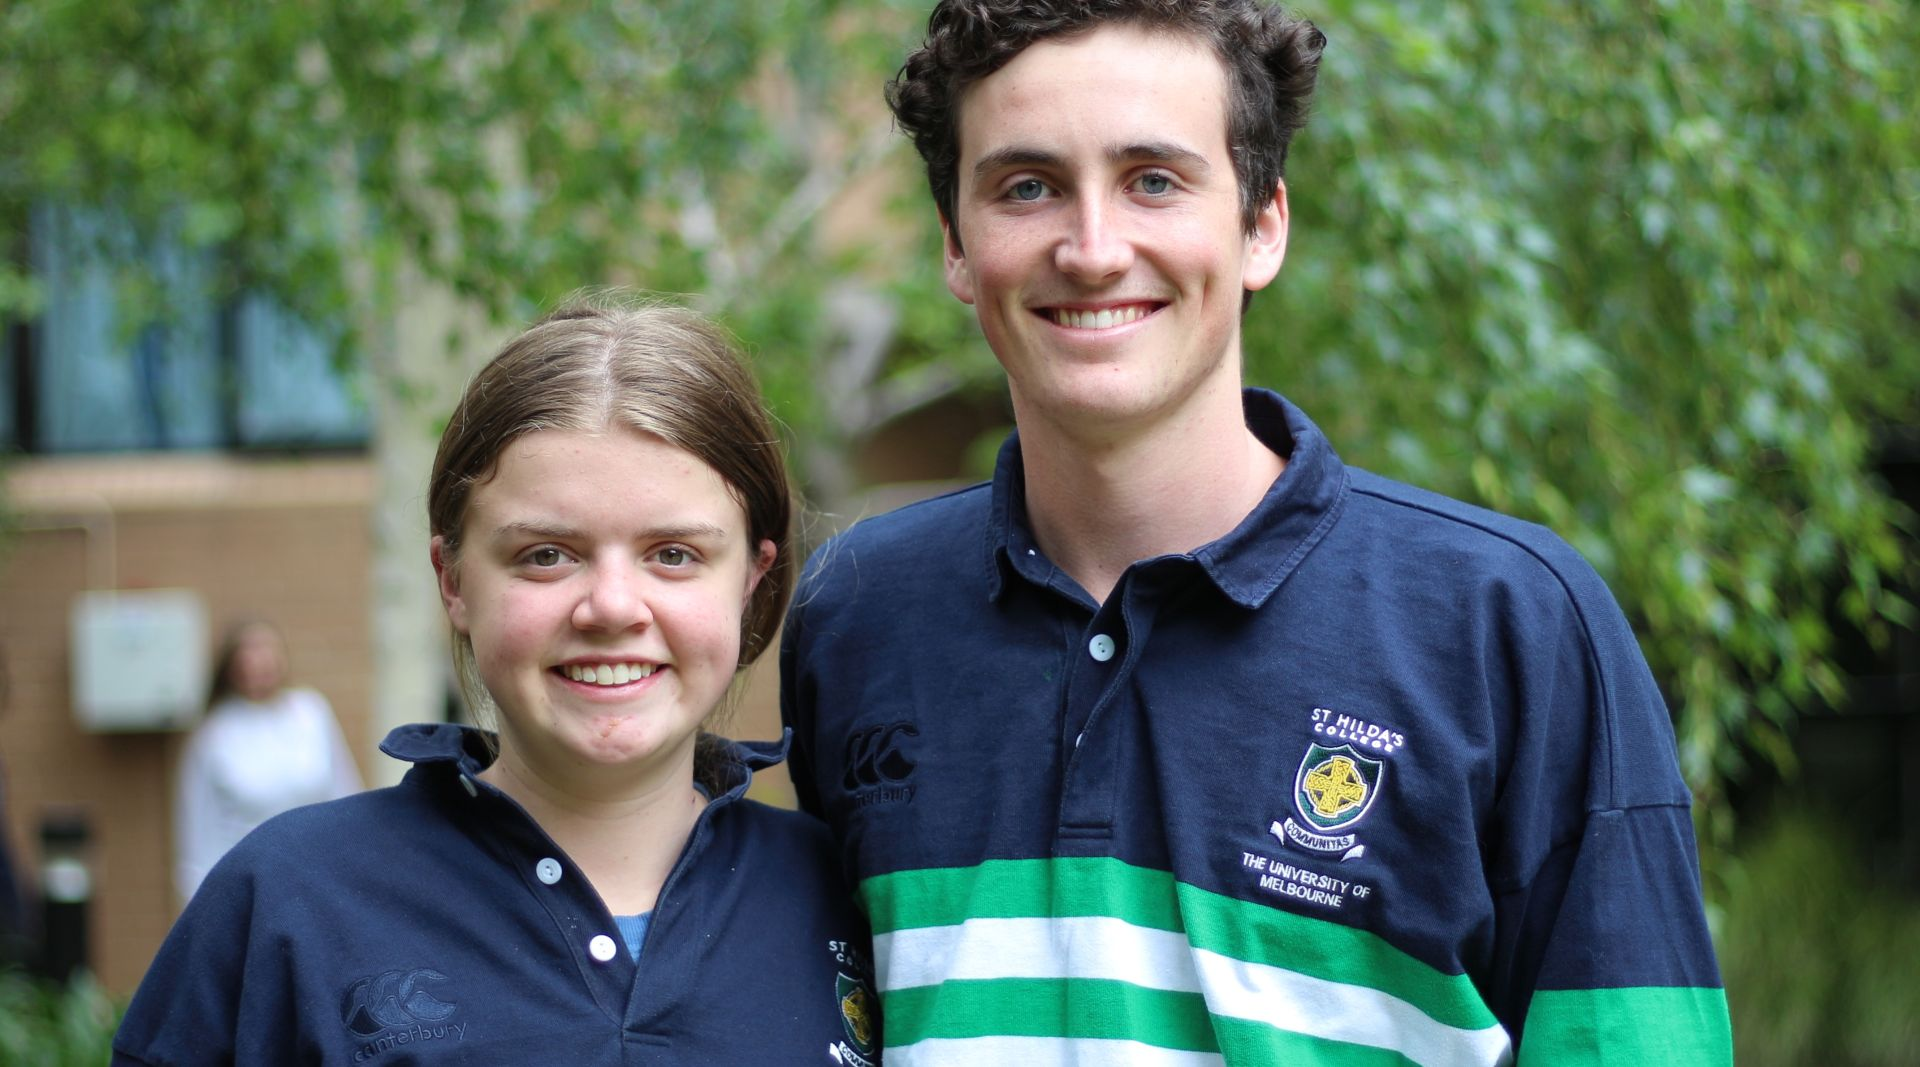 Students at College in Hilda's rugby tops